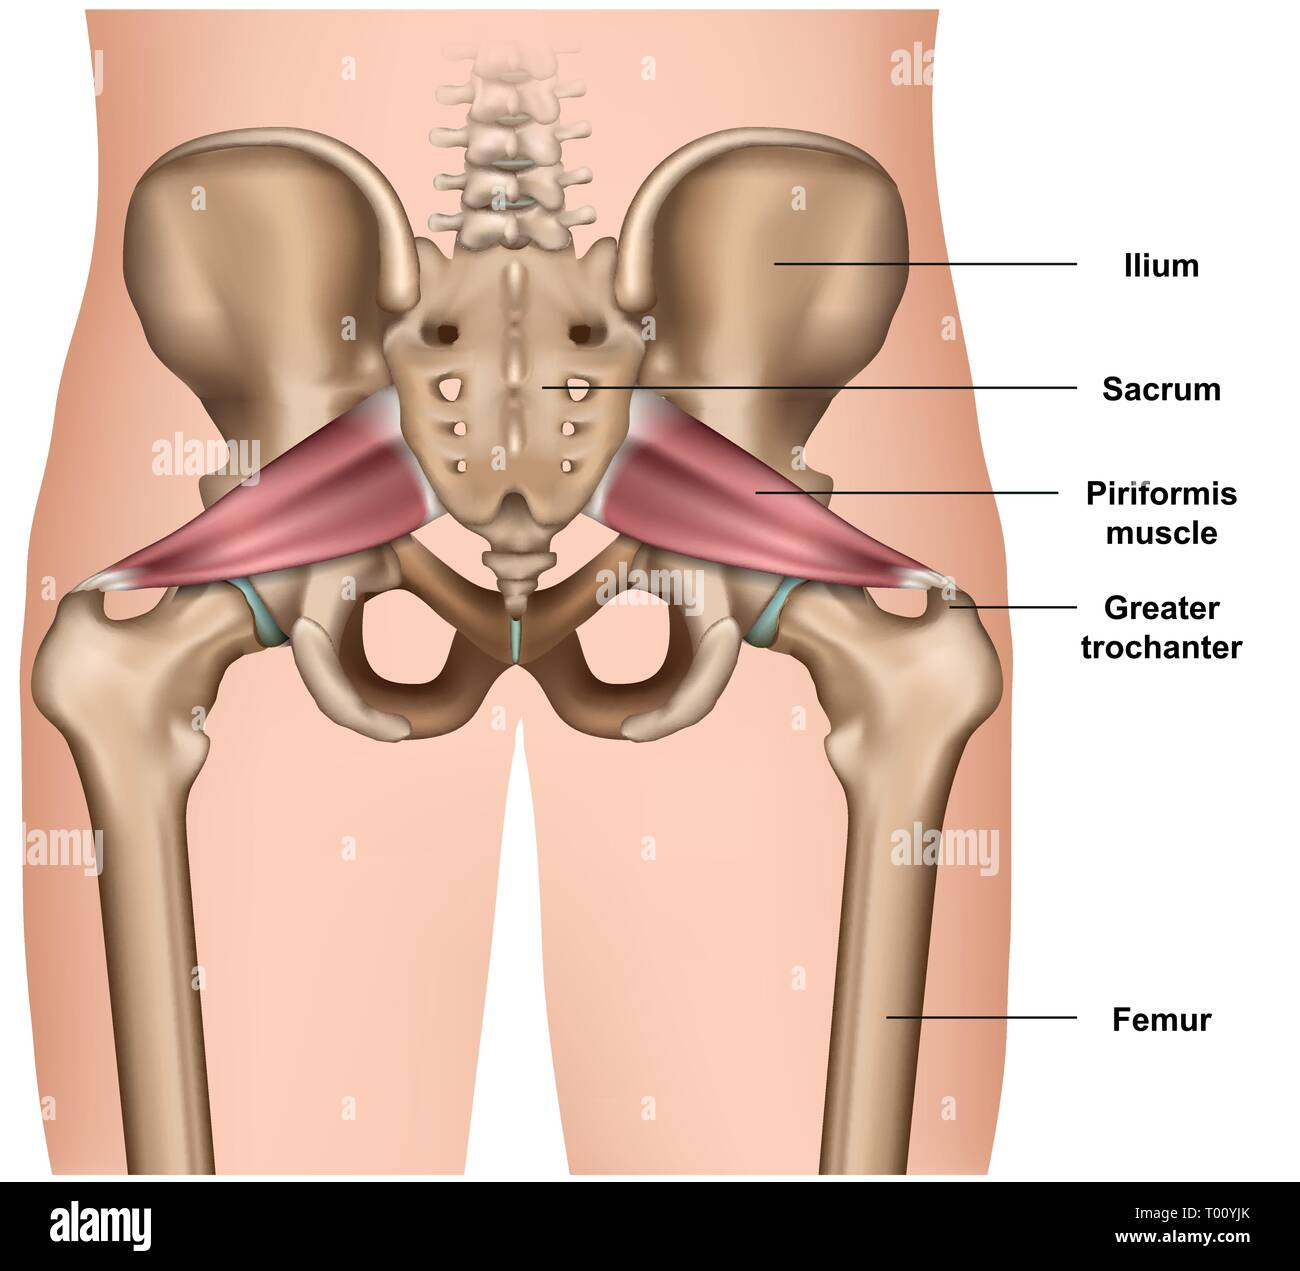 piriformis muscle 3d medical vector illustration on white background - Stock Image